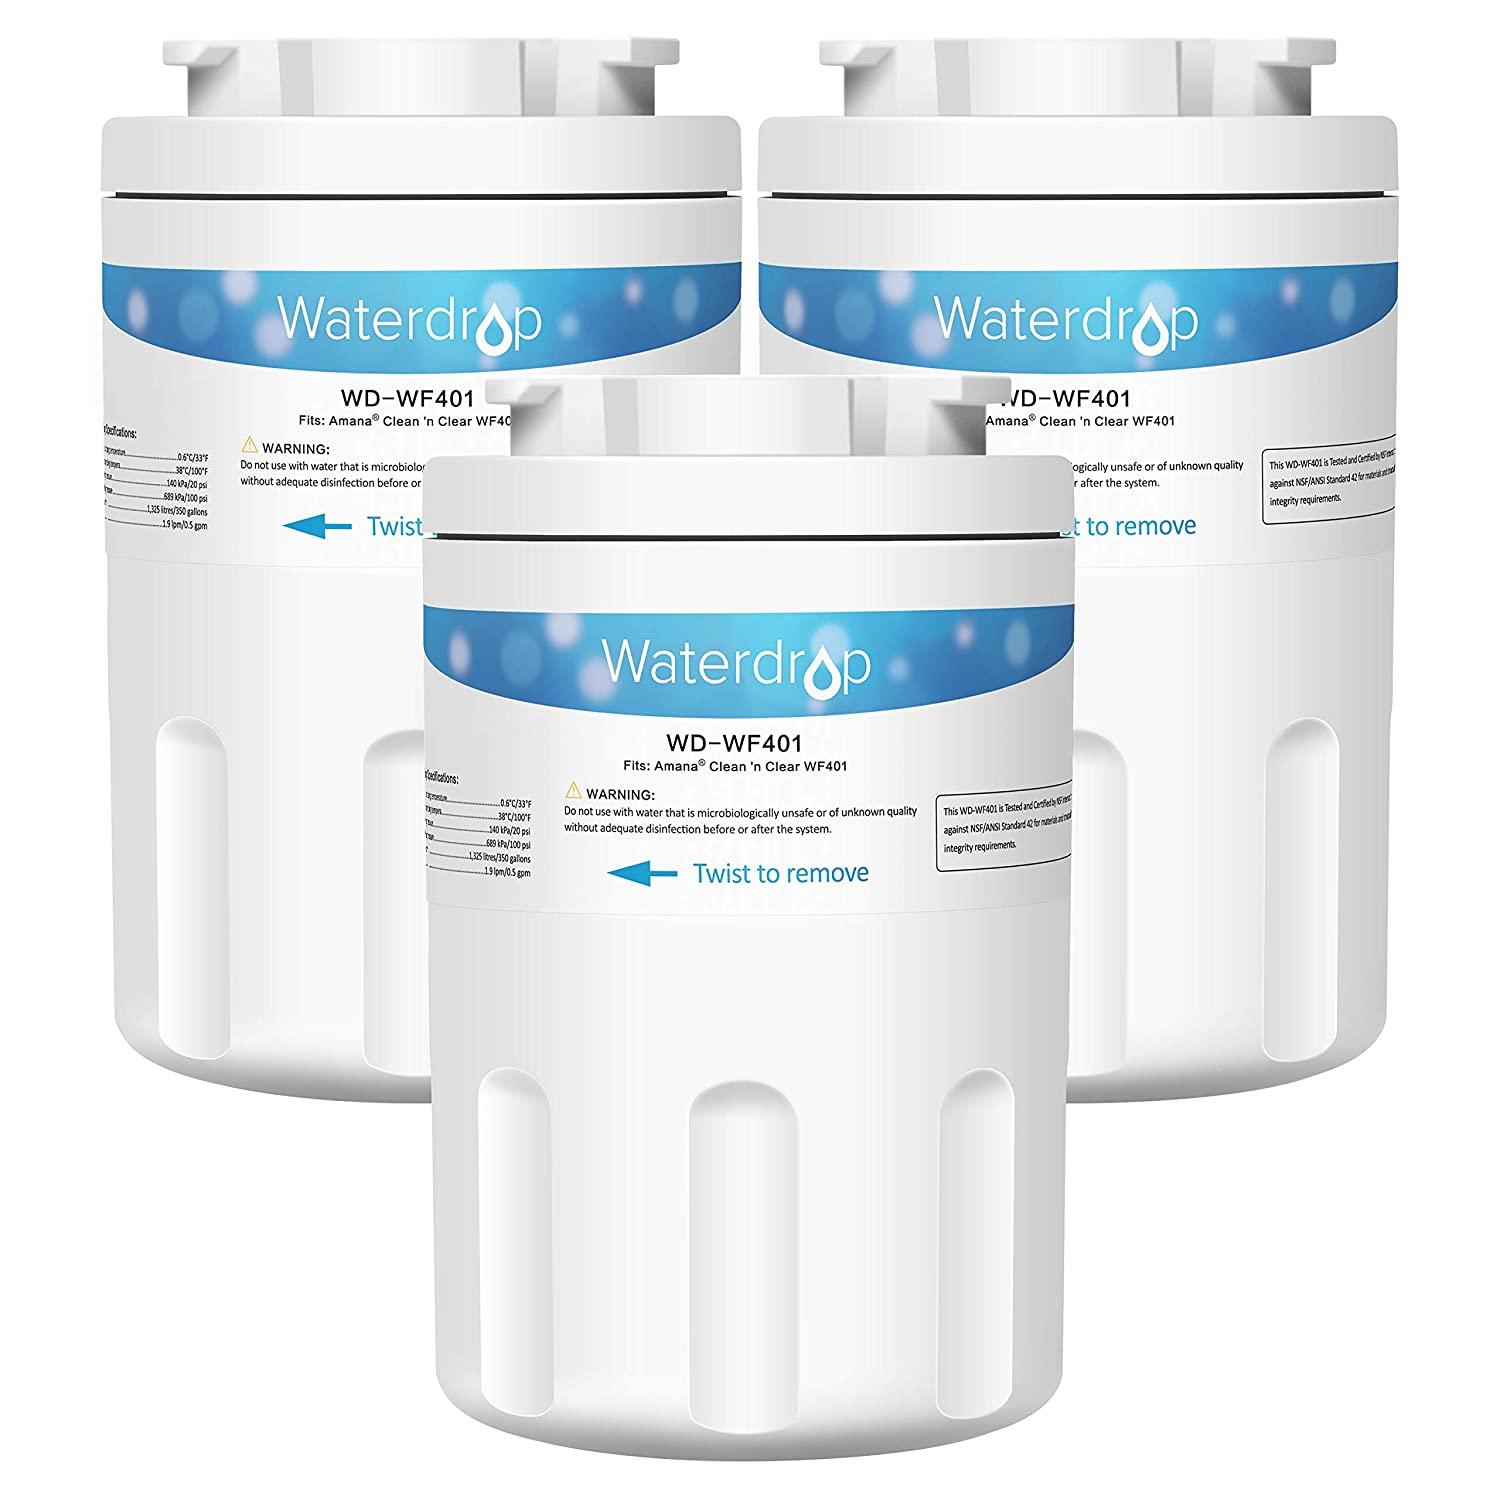 Waterdrop Refrigerator Water Filter, Compatible with Amana Clean N Clear WF401, WF40, 12527304, 46-9014, 469014, Pack of 3